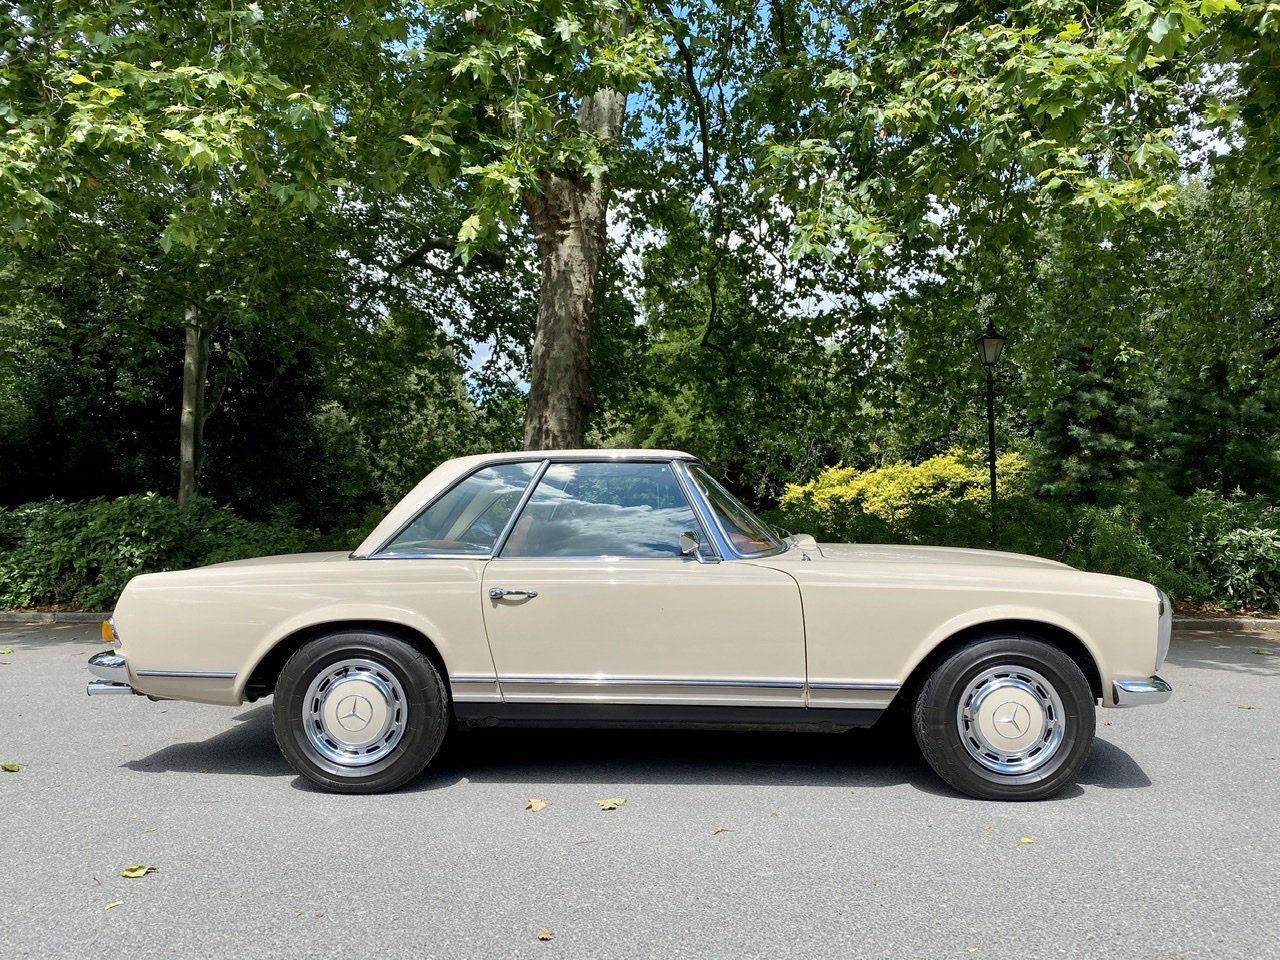 1970 Mercedes-Benz 280 SL 'Pagoda' For Sale (picture 4 of 24)